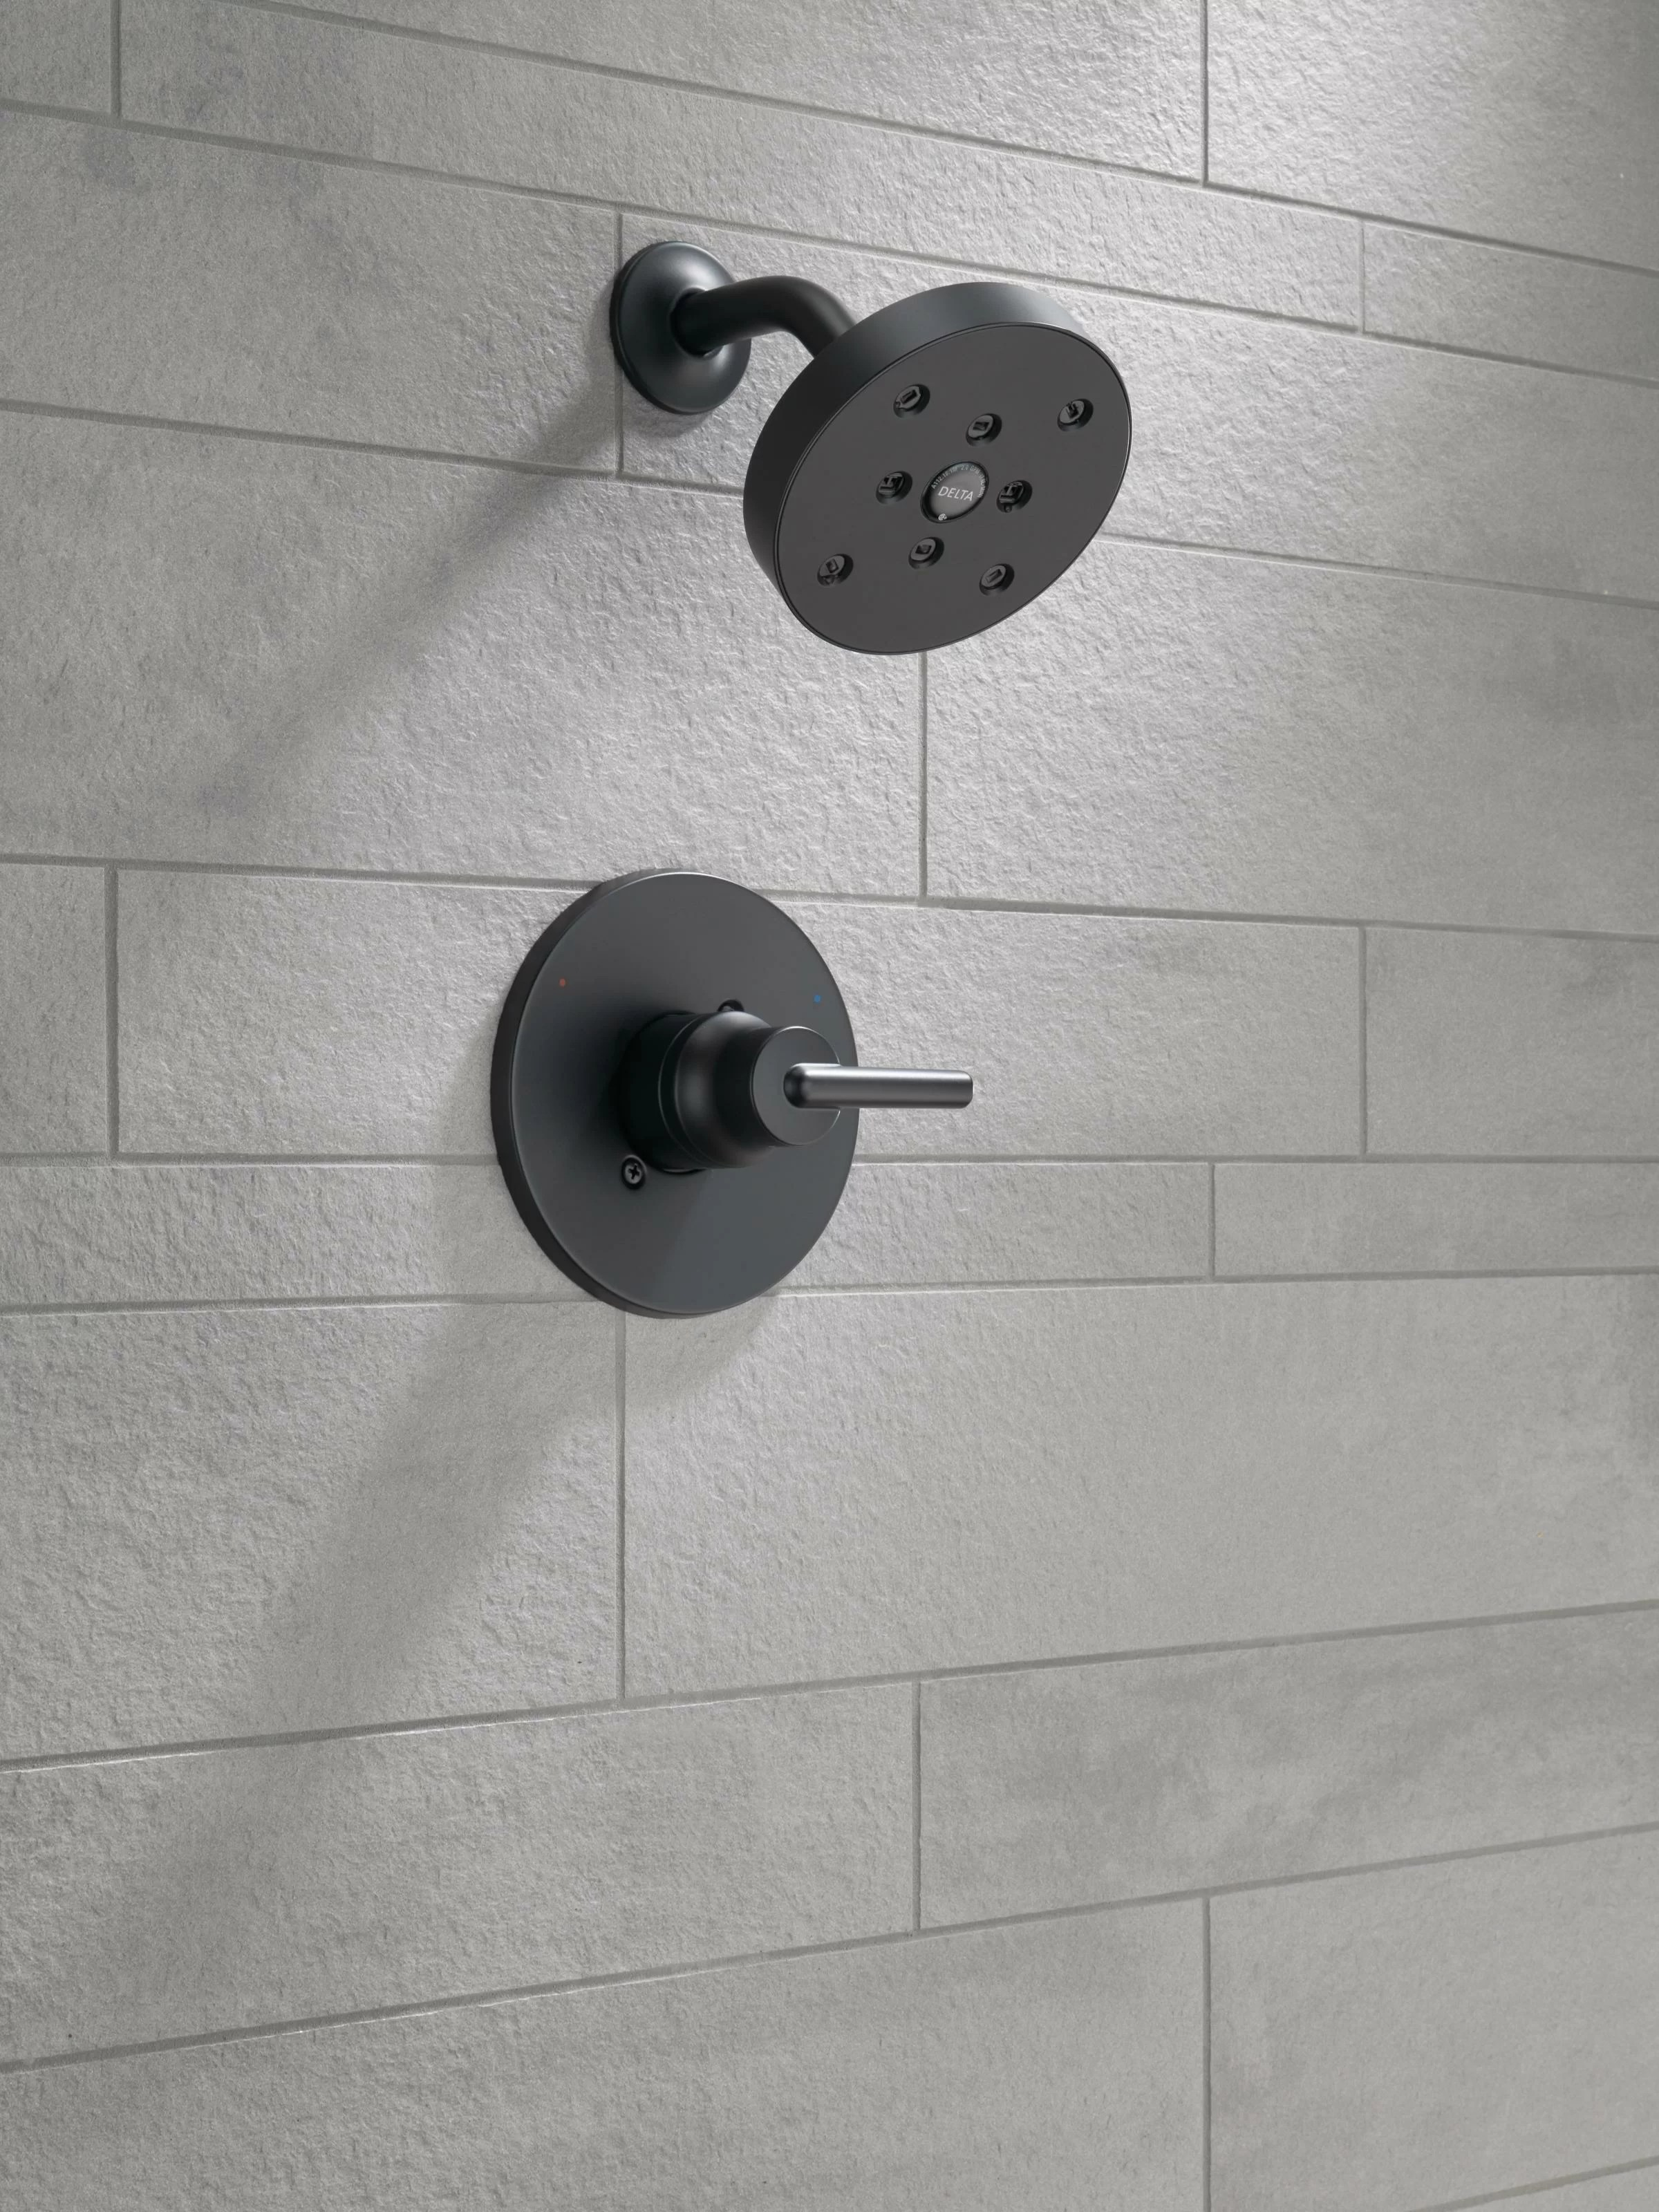 matte black shower faucets systems free shipping over 35 wayfair